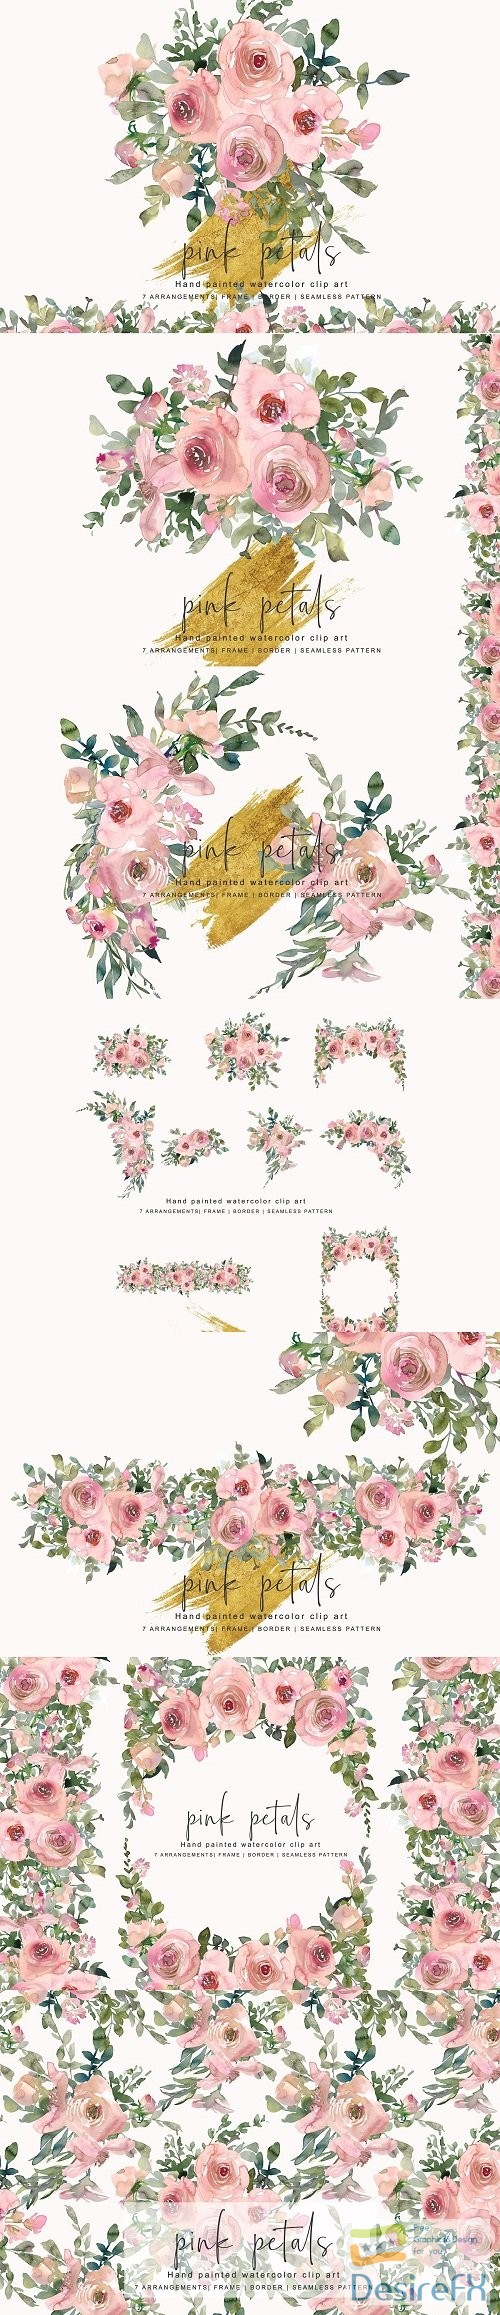 photoshop - Watercolor Blush Rose Clipart - 3355243